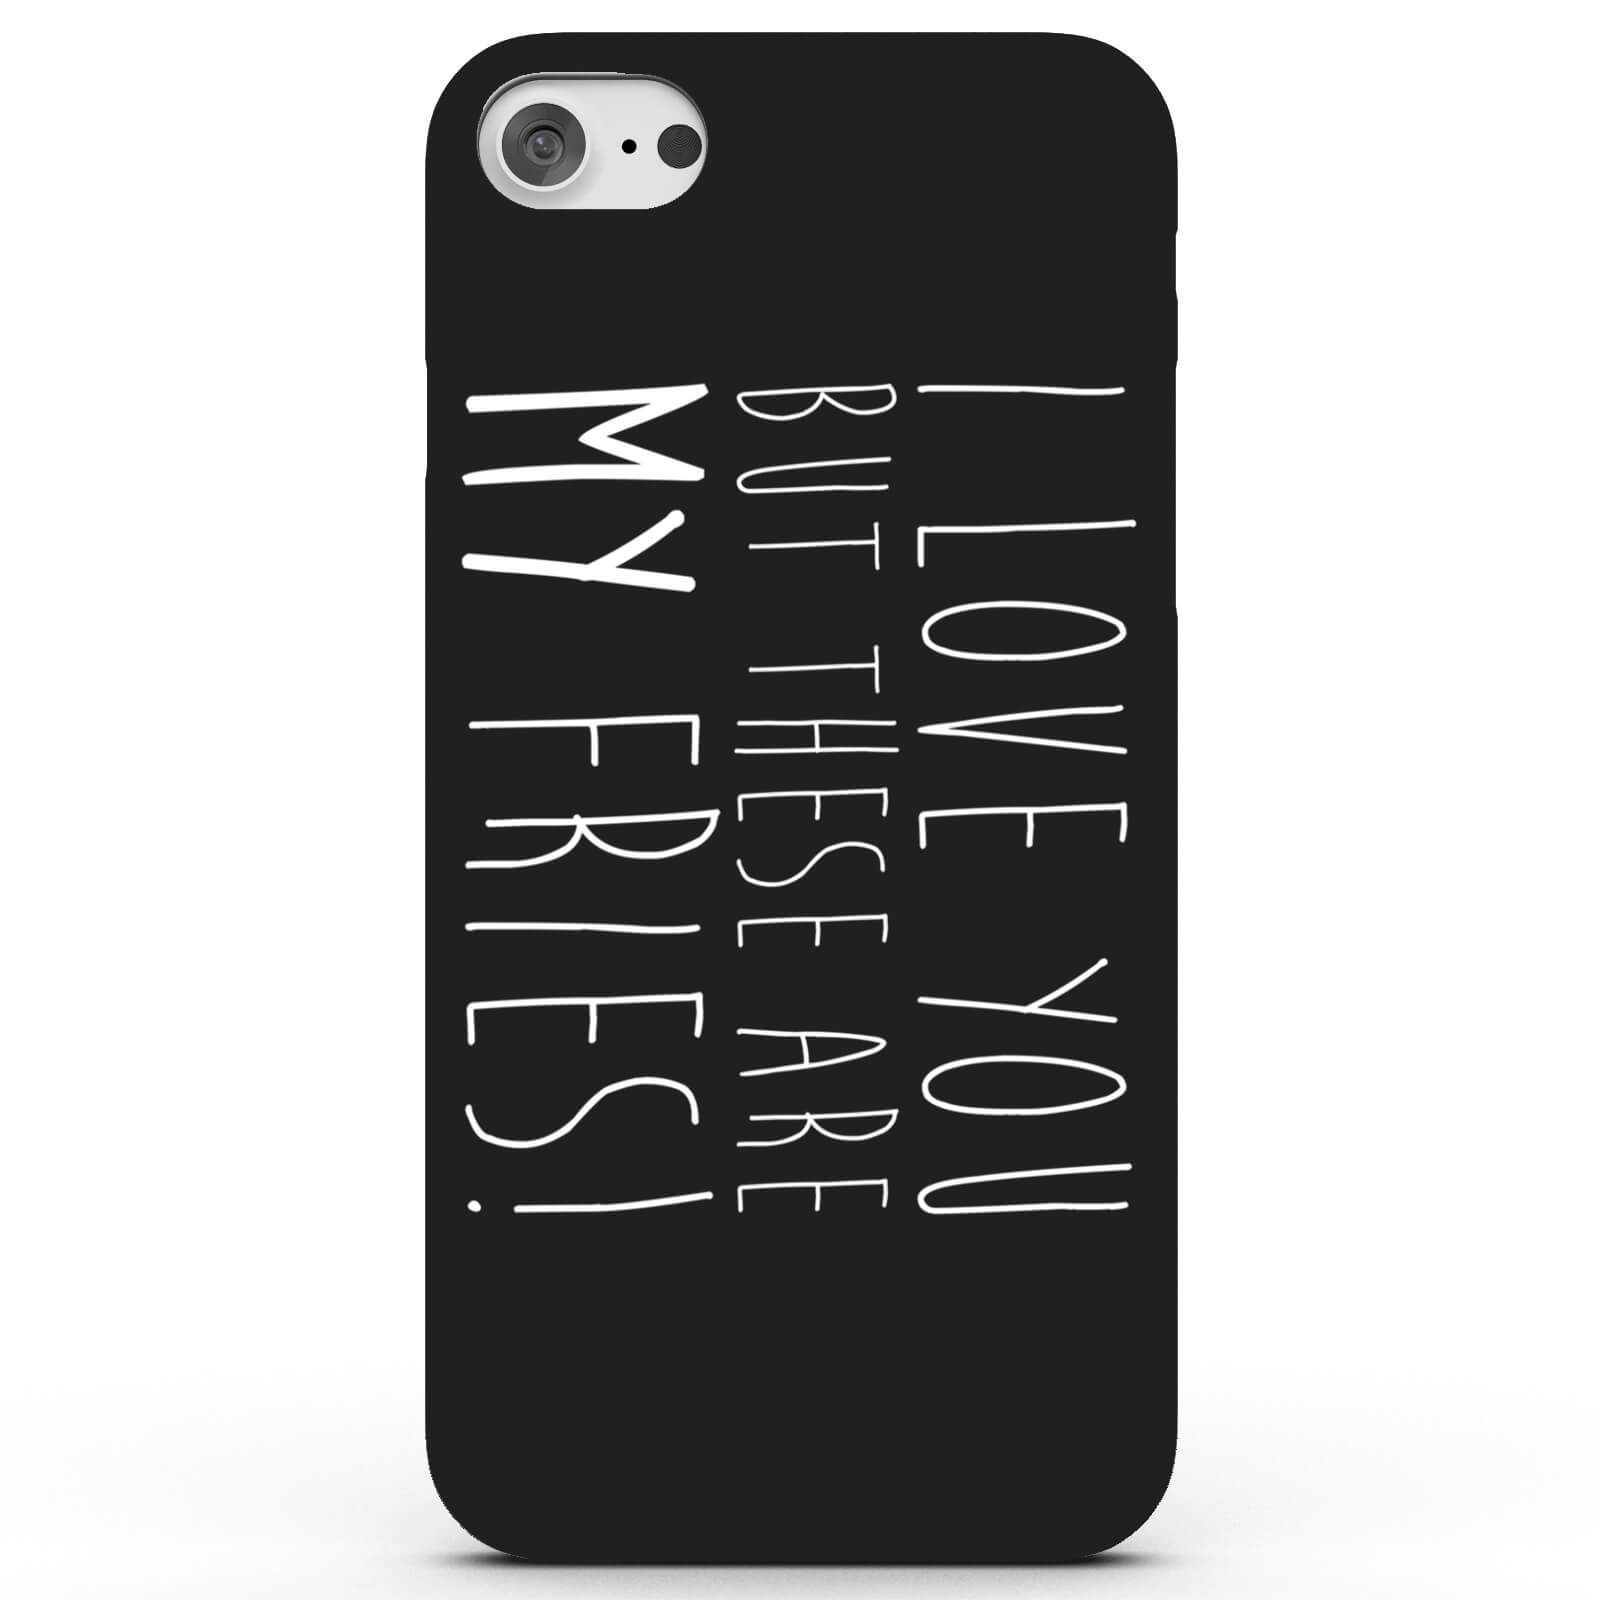 My Fries Phone Case for iPhone & Android - 3 Colours